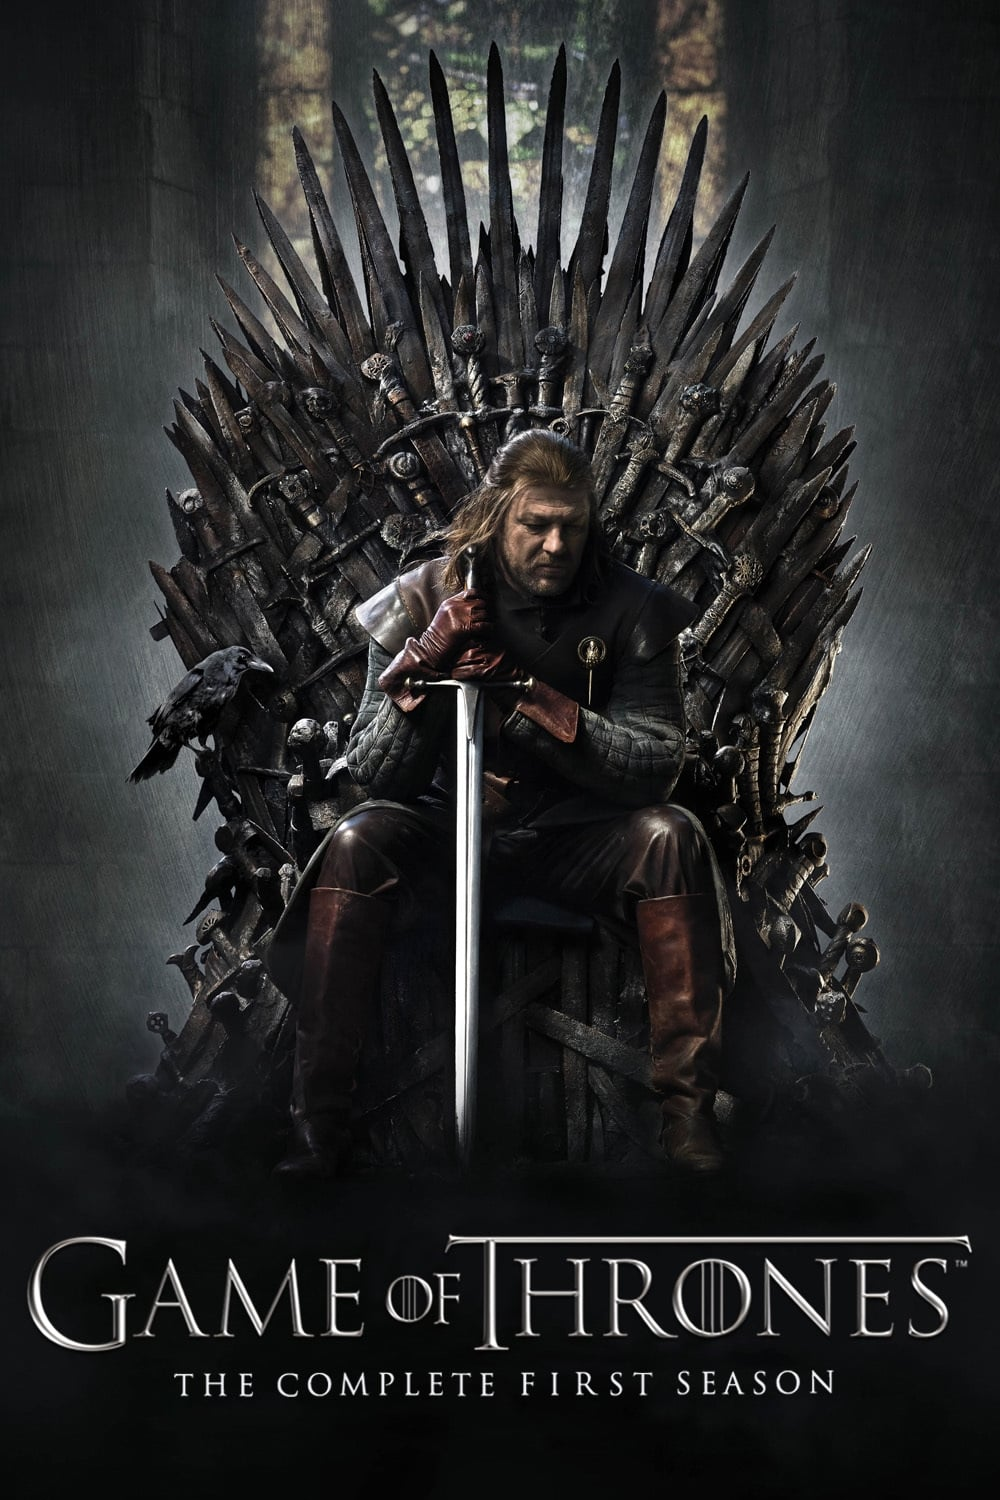 http://podsqod.com/game-of-thrones-1a-temporada-2011-bdrip-bluray-720p-torrent-dual-audio/